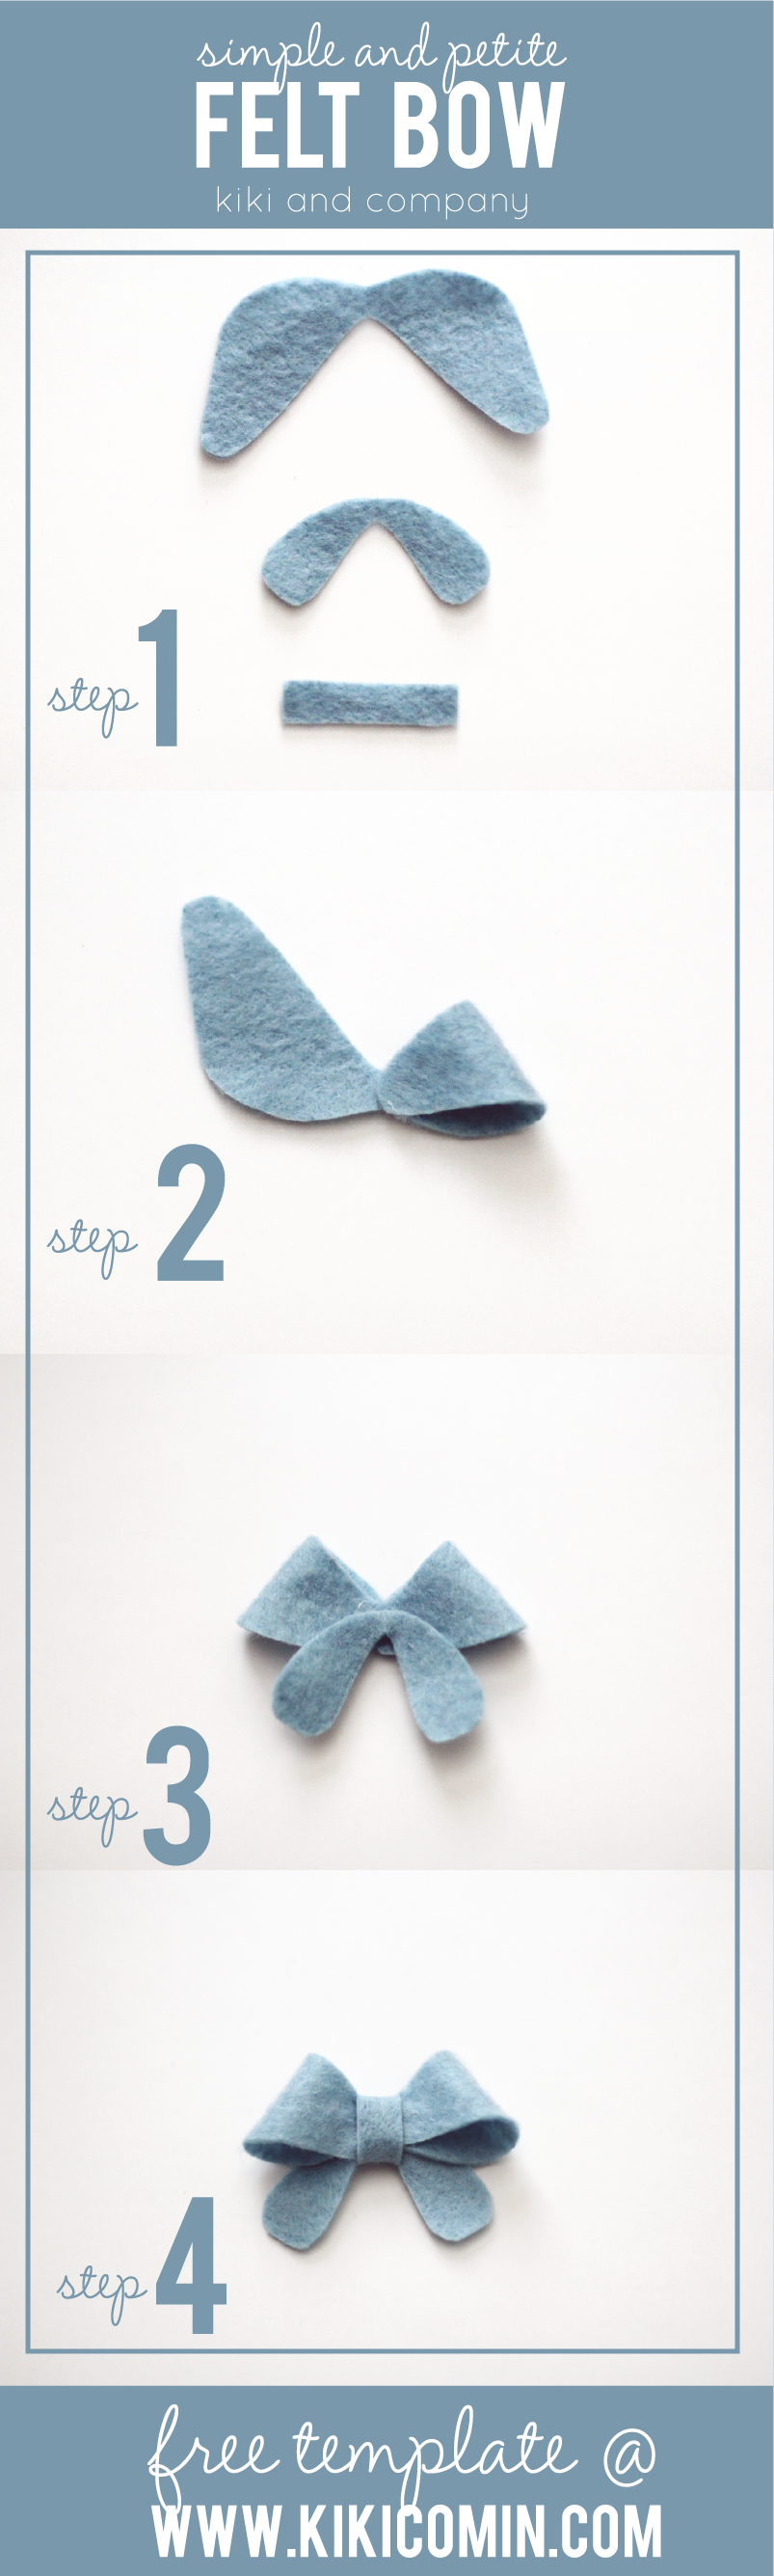 Simple and petite felt bow free template kiki company step 1 using template pronofoot35fo Gallery